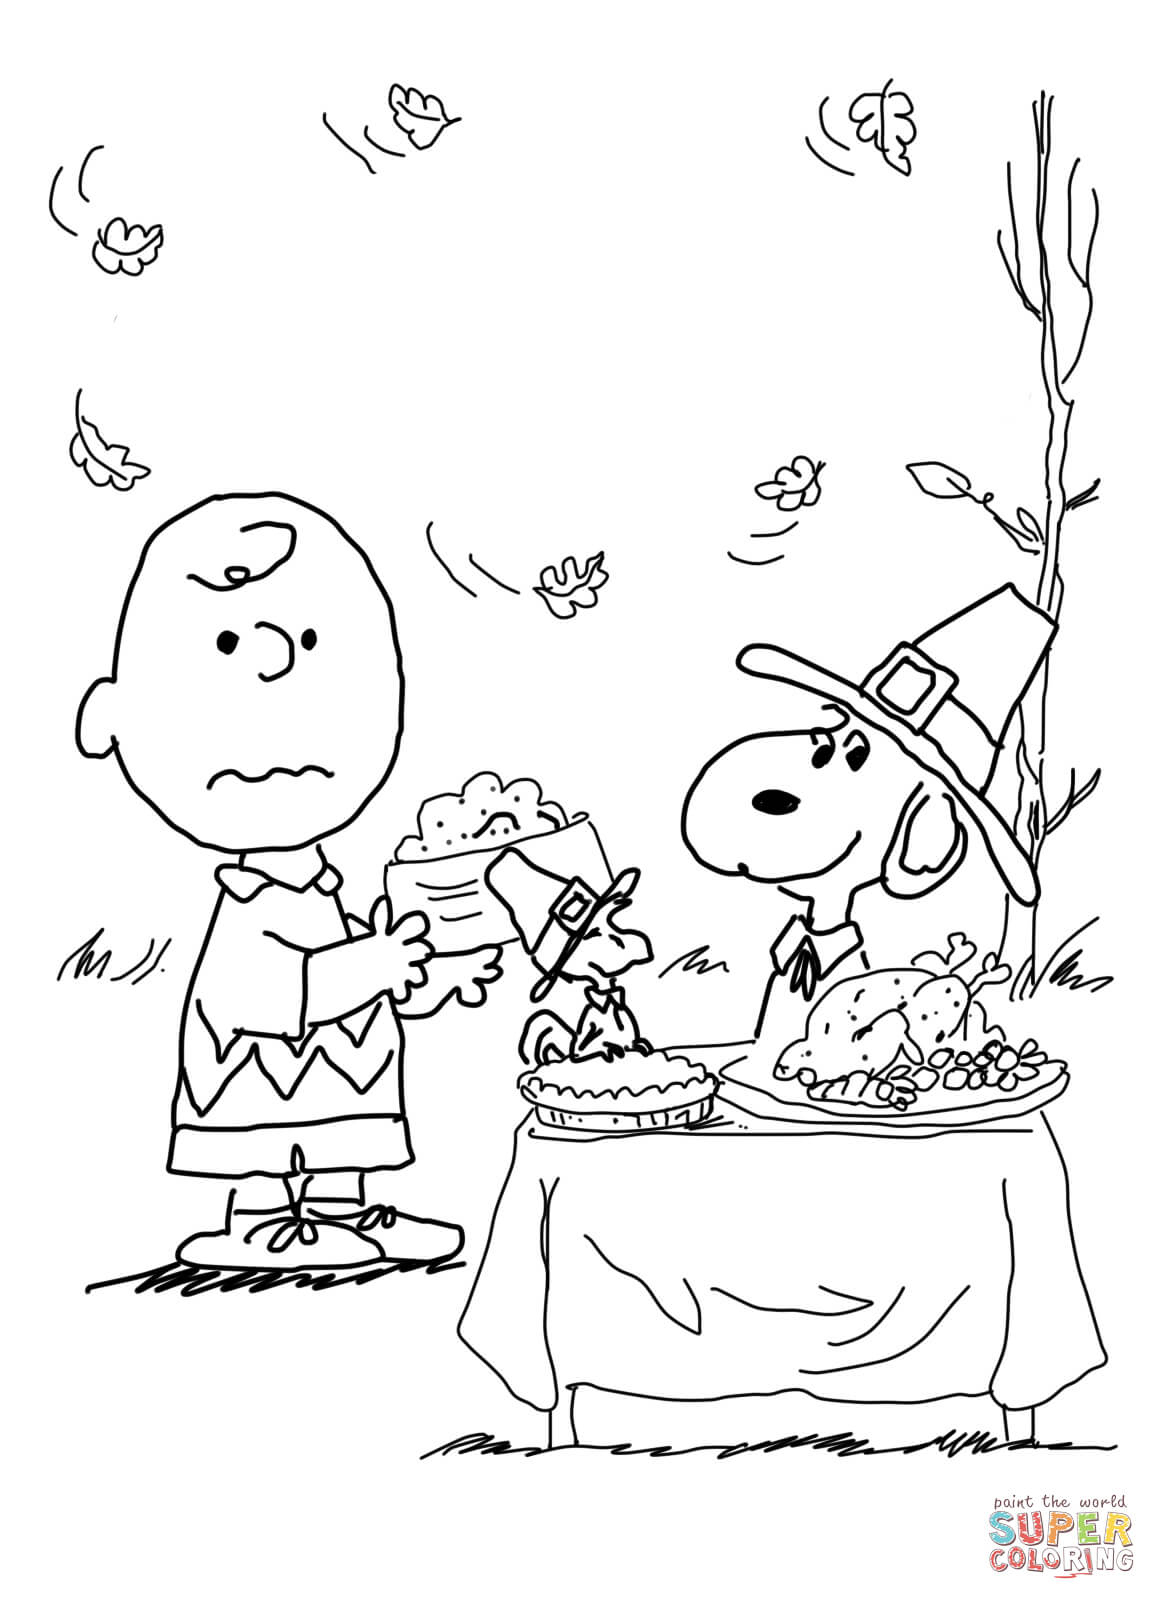 Charlie Brown Thanksgiving Coloring Page   Free Printable Coloring Pages - Free Printable Thanksgiving Coloring Pages